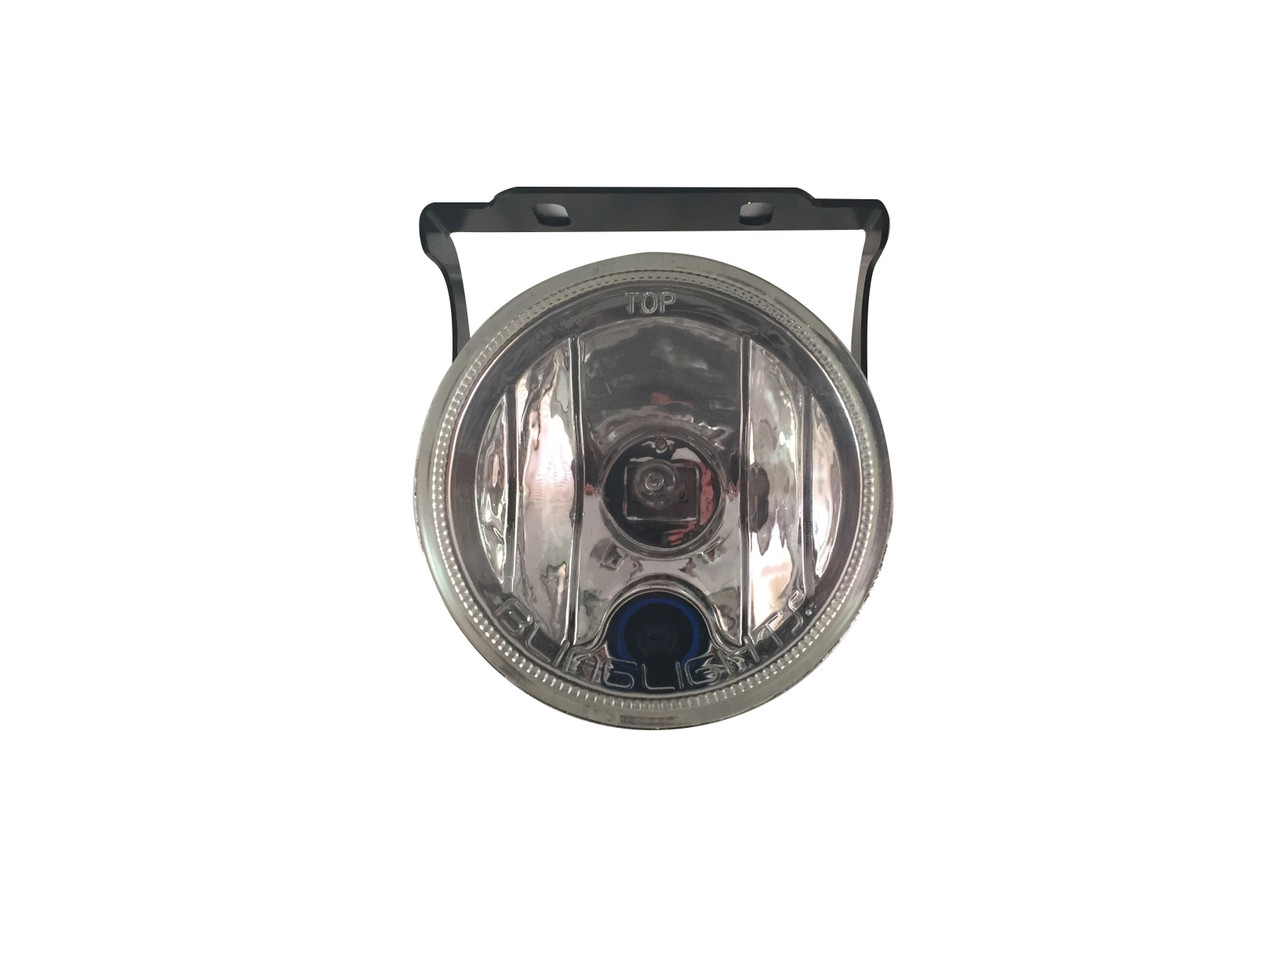 Xenon Fog Lamps Lights for 2018.5 2019 2020 2021 Smart EQ fortwo forfour